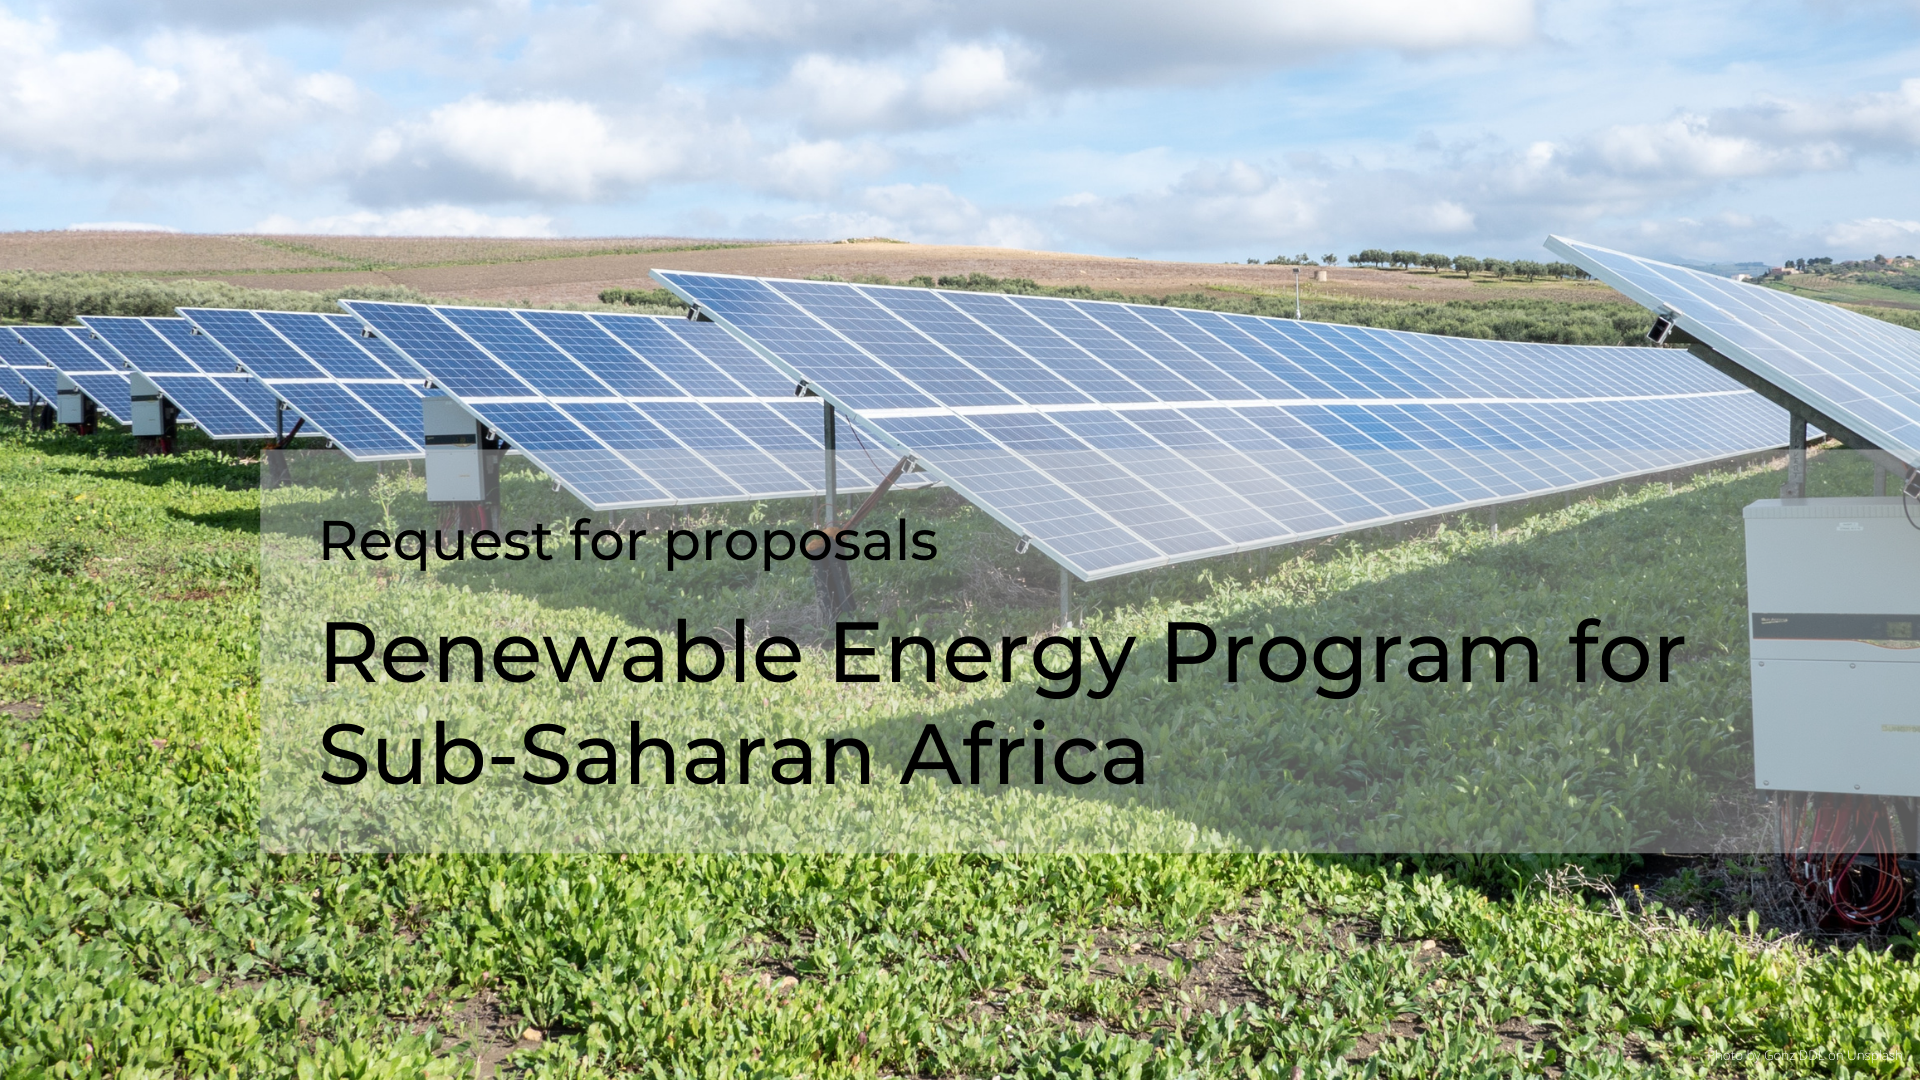 Image of the RFP - Renewable Energy Program for Sub-Saharan Africa